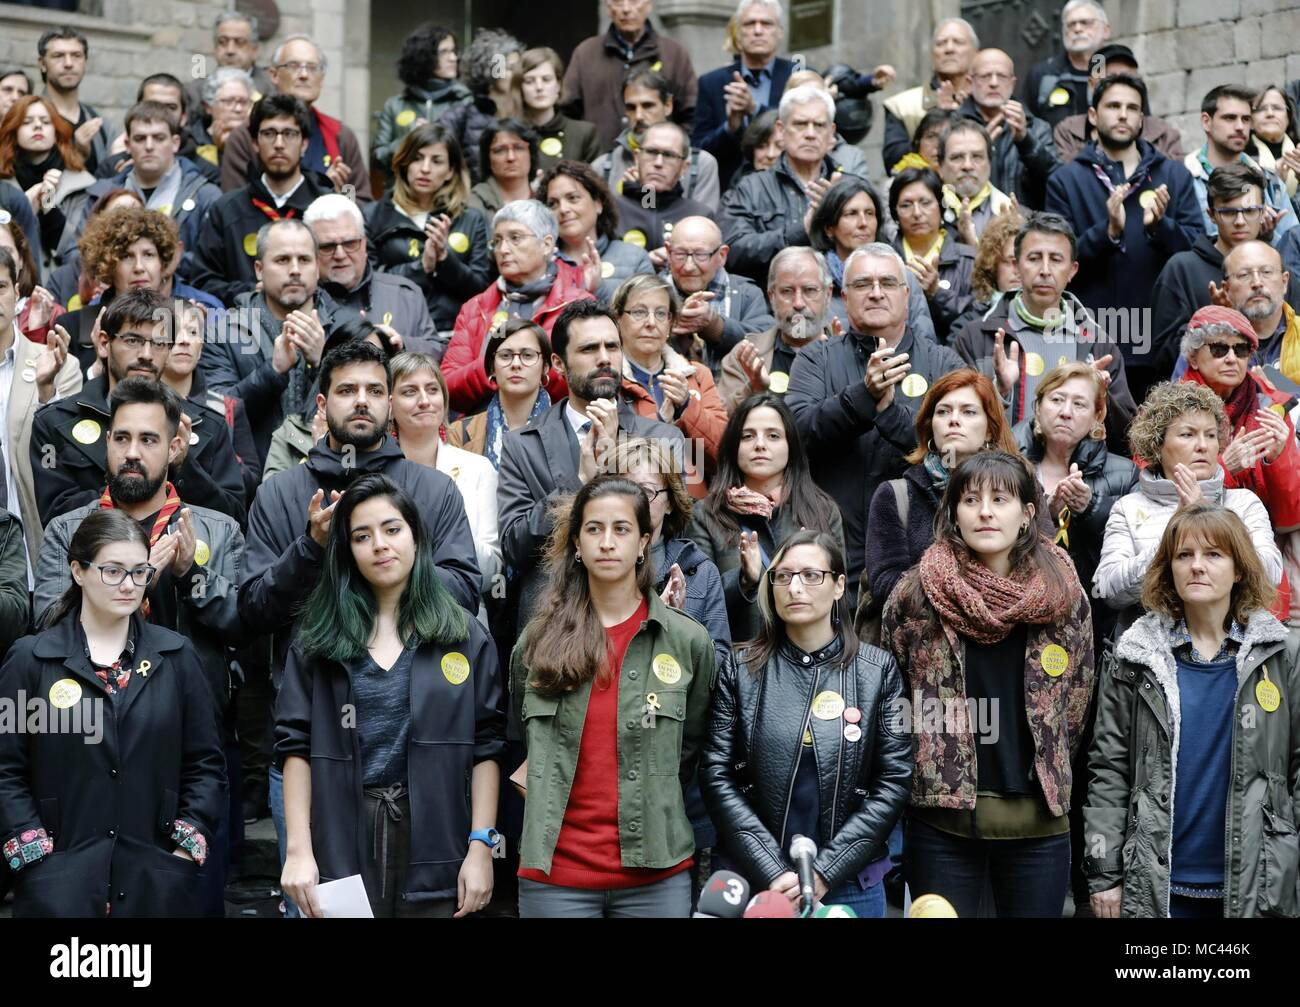 Attendees during an event by Catalan Platform 'En peu de pau' ('Standing for Peace') in Barcelona, Catalonia, north eastern Spain, 12 April 2018. Catalan Parliament's Speaker, Roger Torrent, has postponed the appointment of Jordi Sanchez as new Catalan President that was initially scheduled for 13 April due to Spanish High Court's refusal to release Jordi Sanchez, who is currently under temporary custody. EFE/Andreu Dalmau Stock Photo